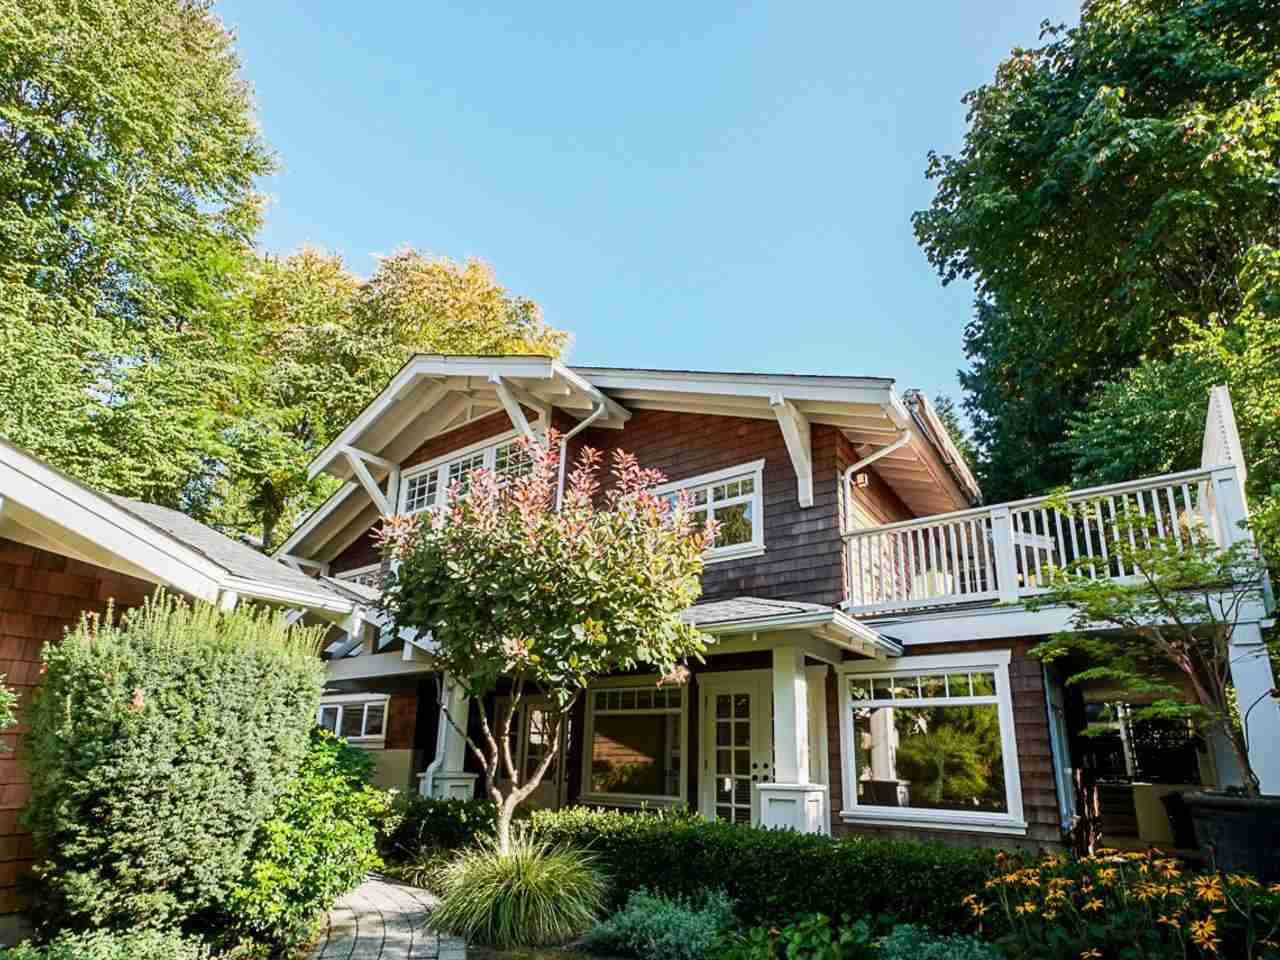 """Main Photo: 850 FOREST HILLS Drive in North Vancouver: Edgemont House for sale in """"Edgemont"""" : MLS®# R2506878"""